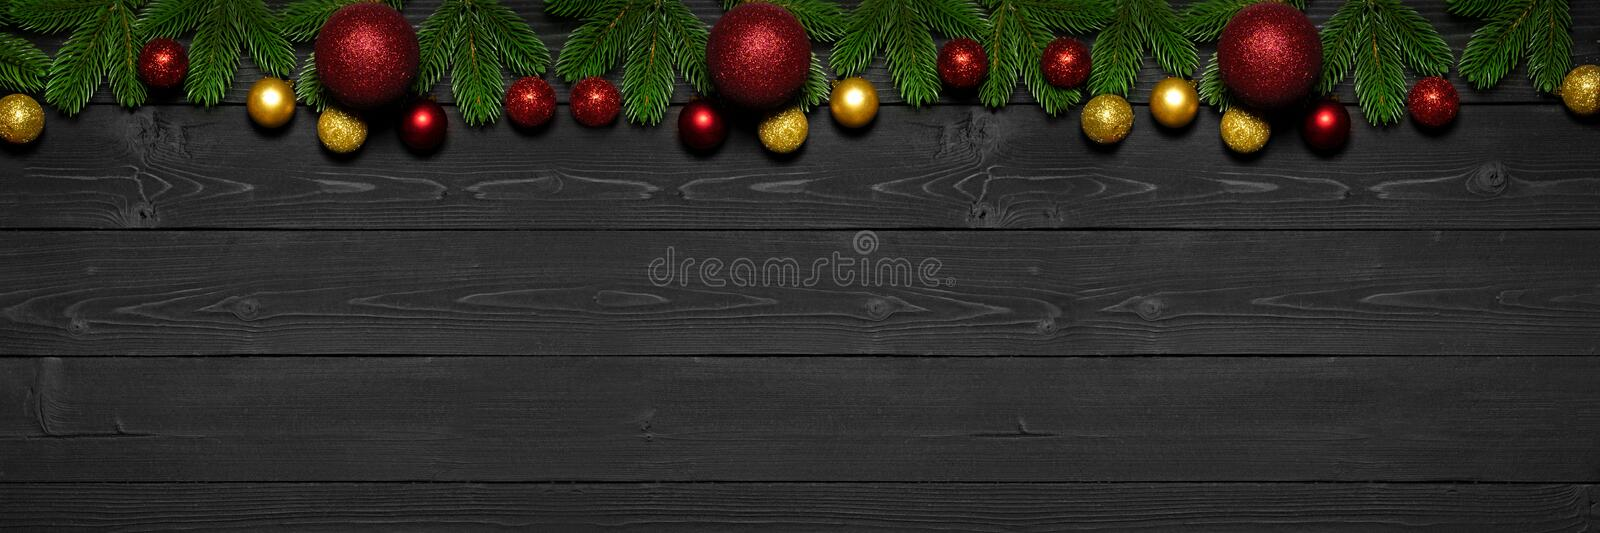 Christmas background with fir tree branches and xmas ornament bauble on dark wooden board. Holiday Christmas composition royalty free stock photos